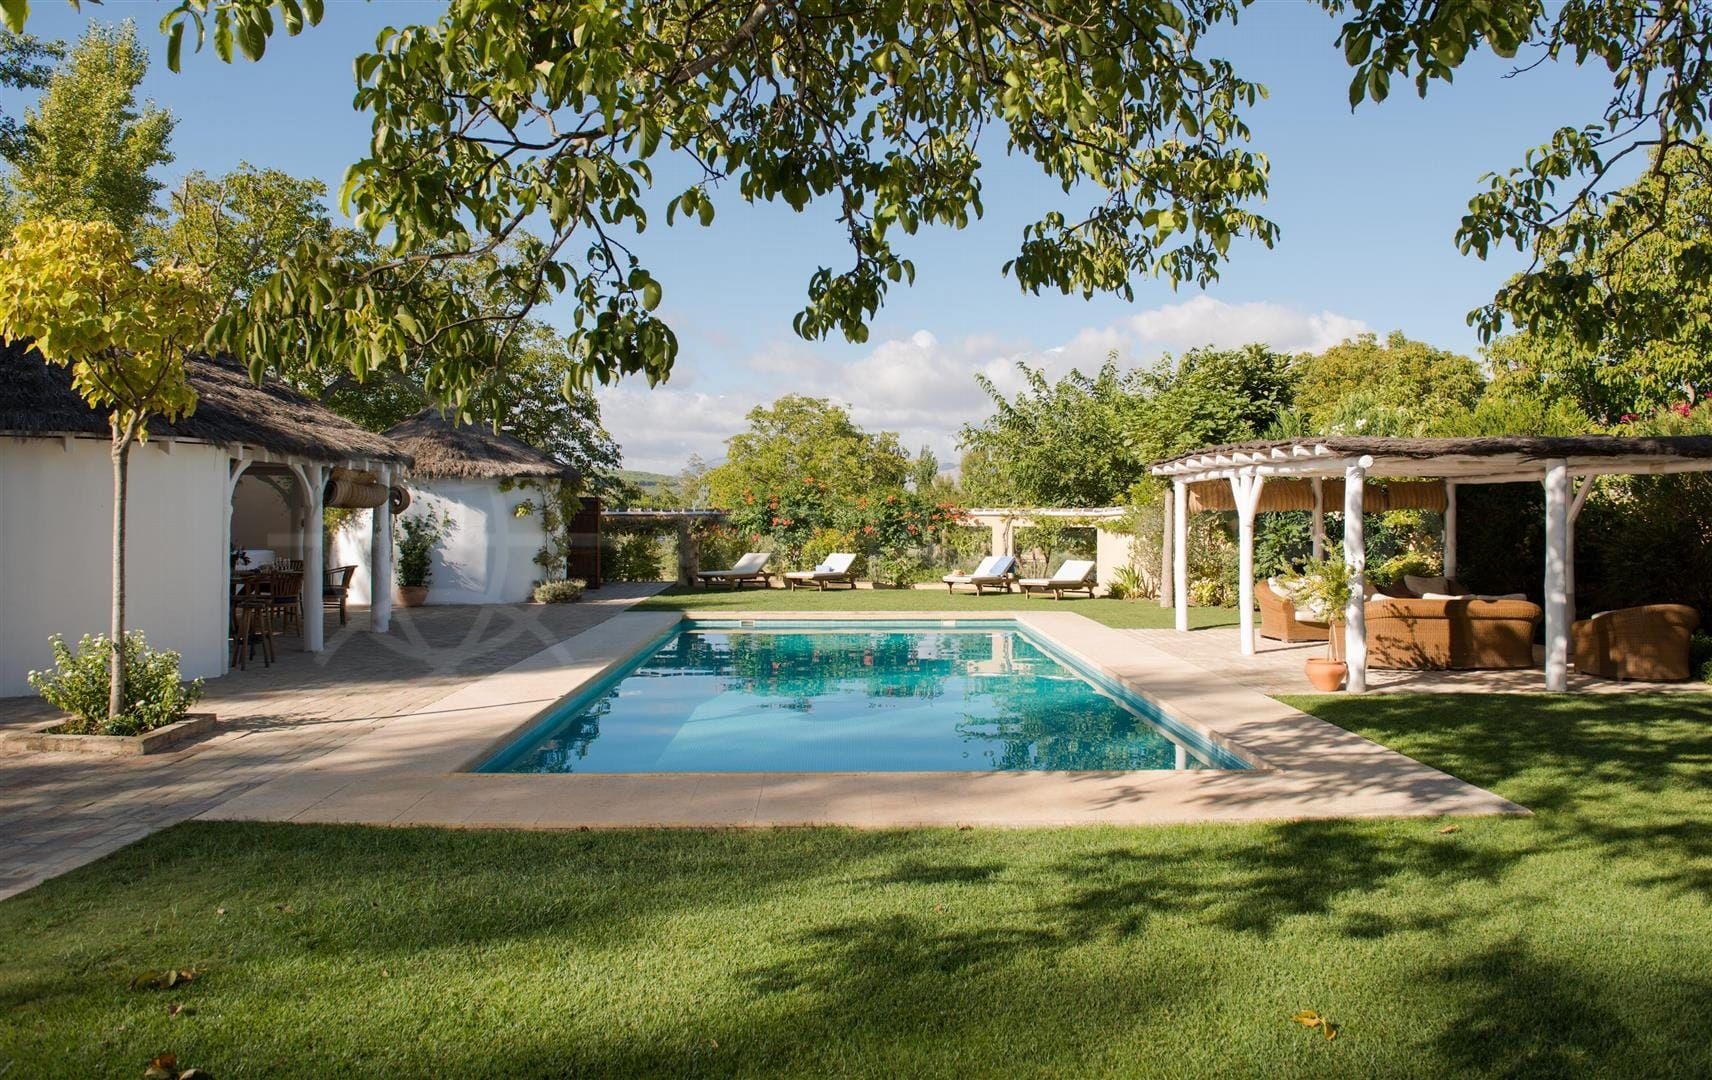 Property in Ronda with Pool